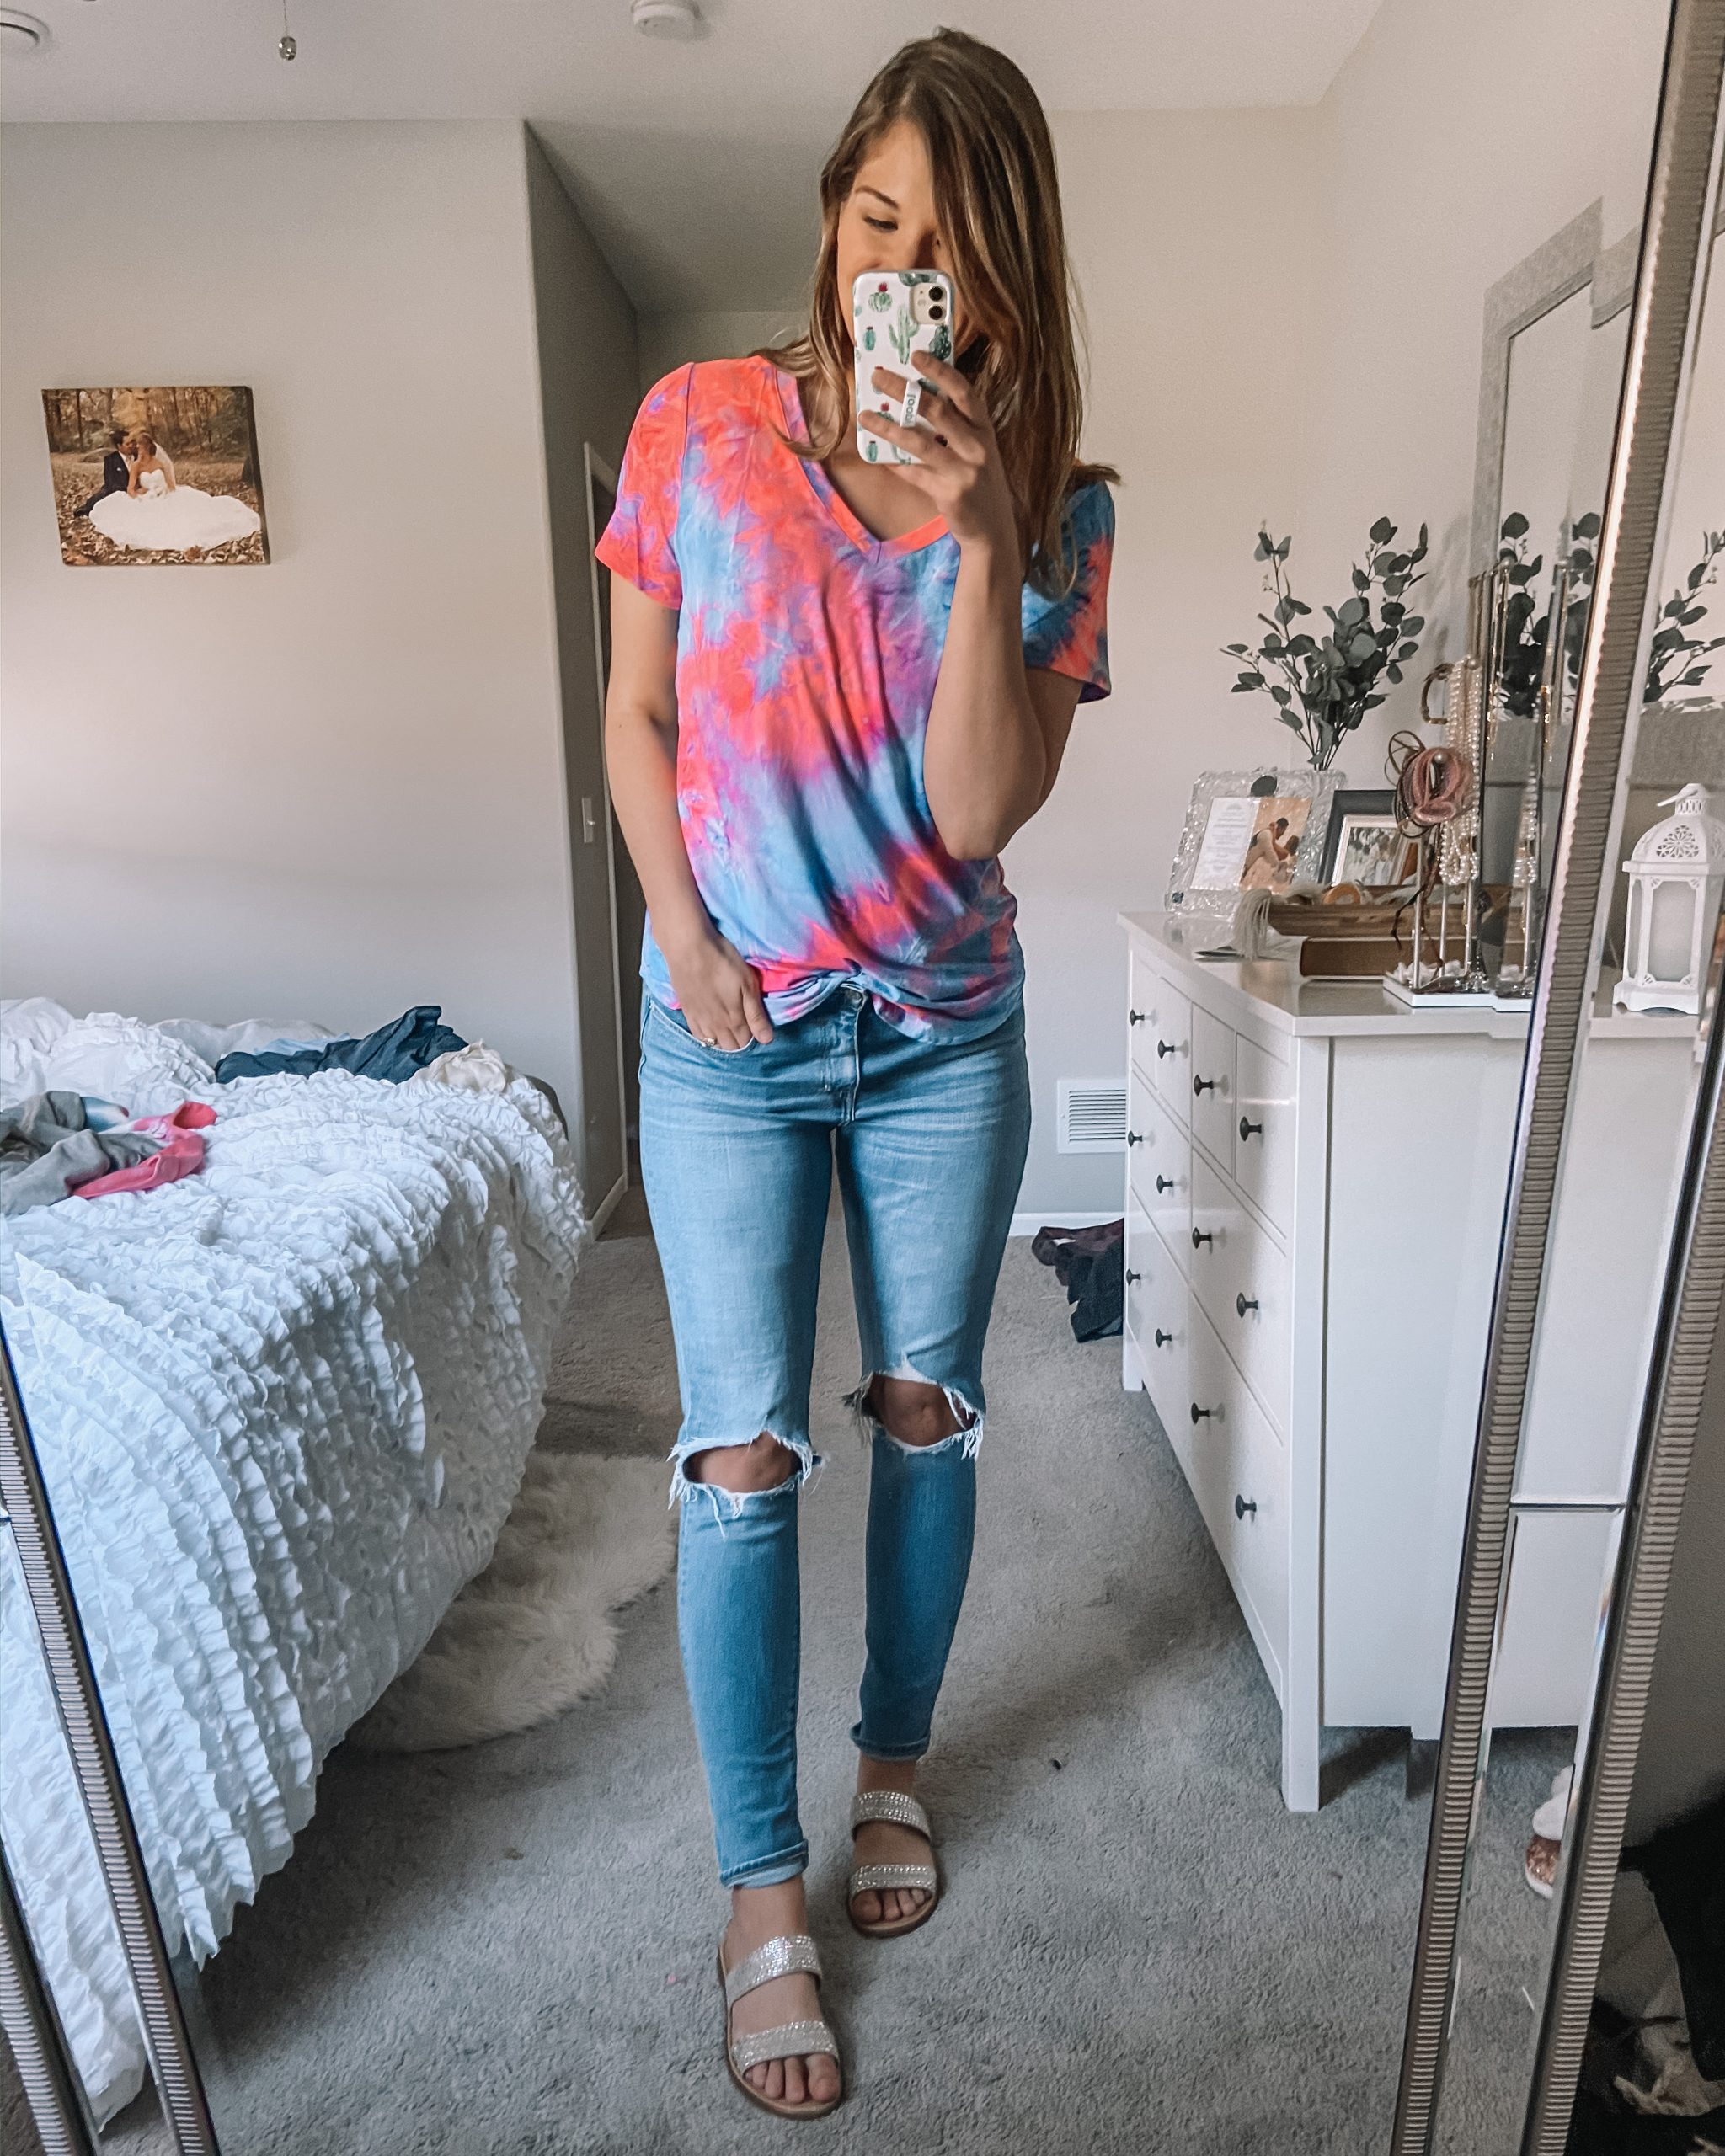 neon pink and blue v neck tee 721 busted knee rugged indigo jeans kersha sandals rhinestone sandals